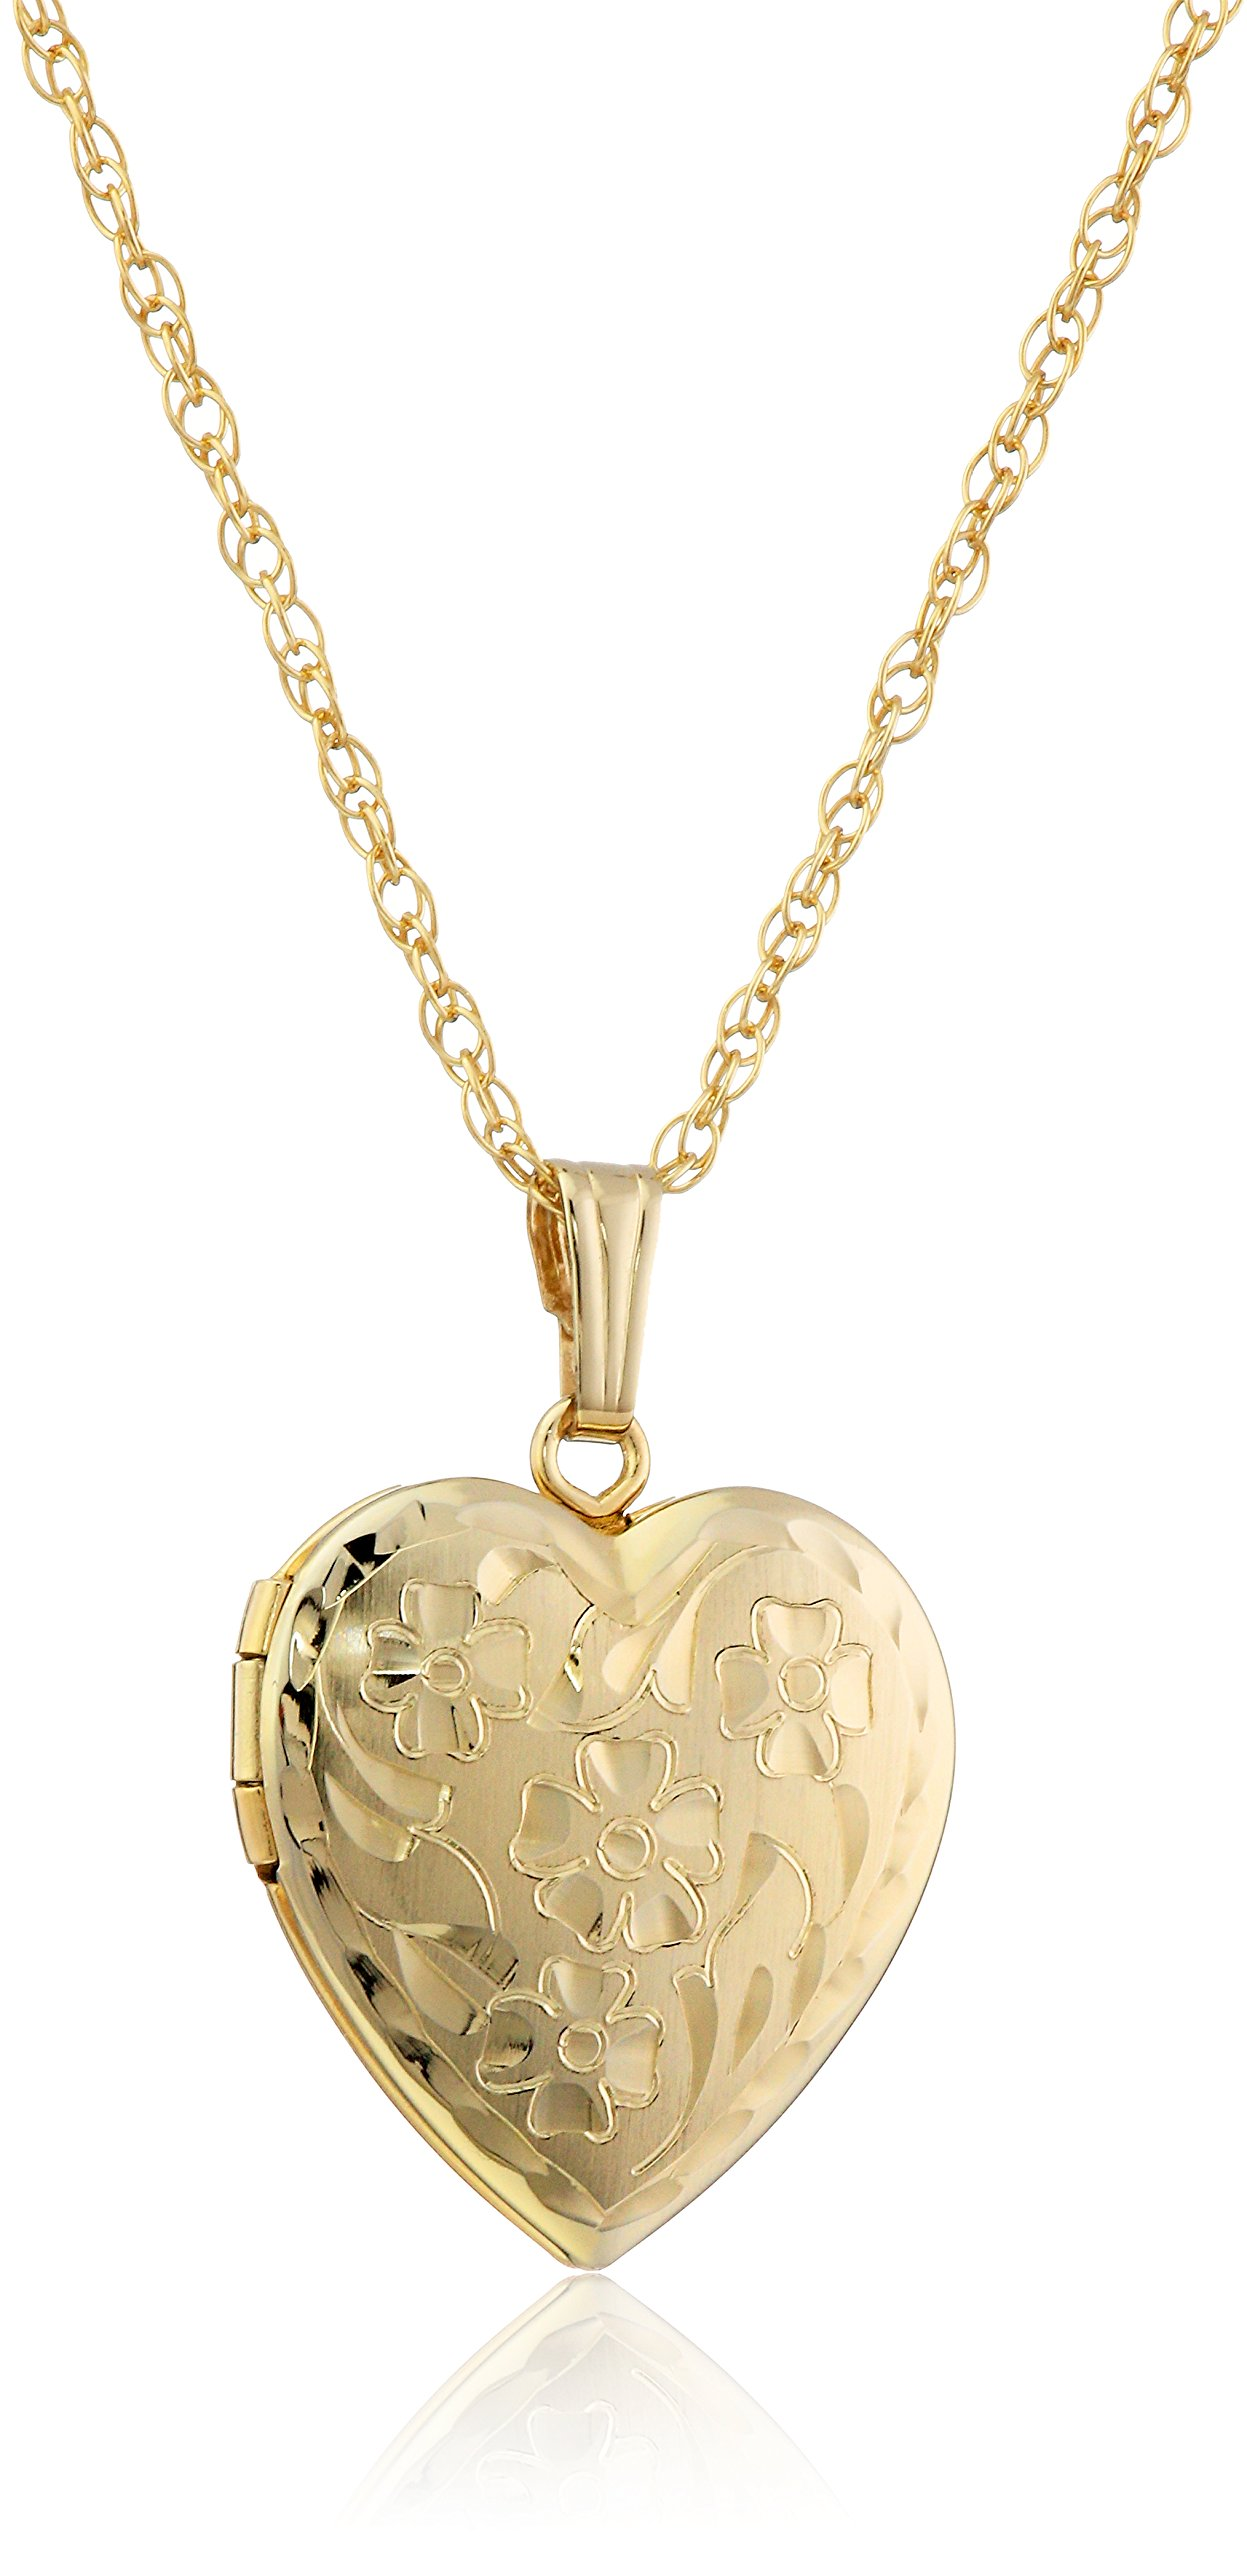 14k Yellow Gold-Filled Engraved Flowers Heart Locket, 18''